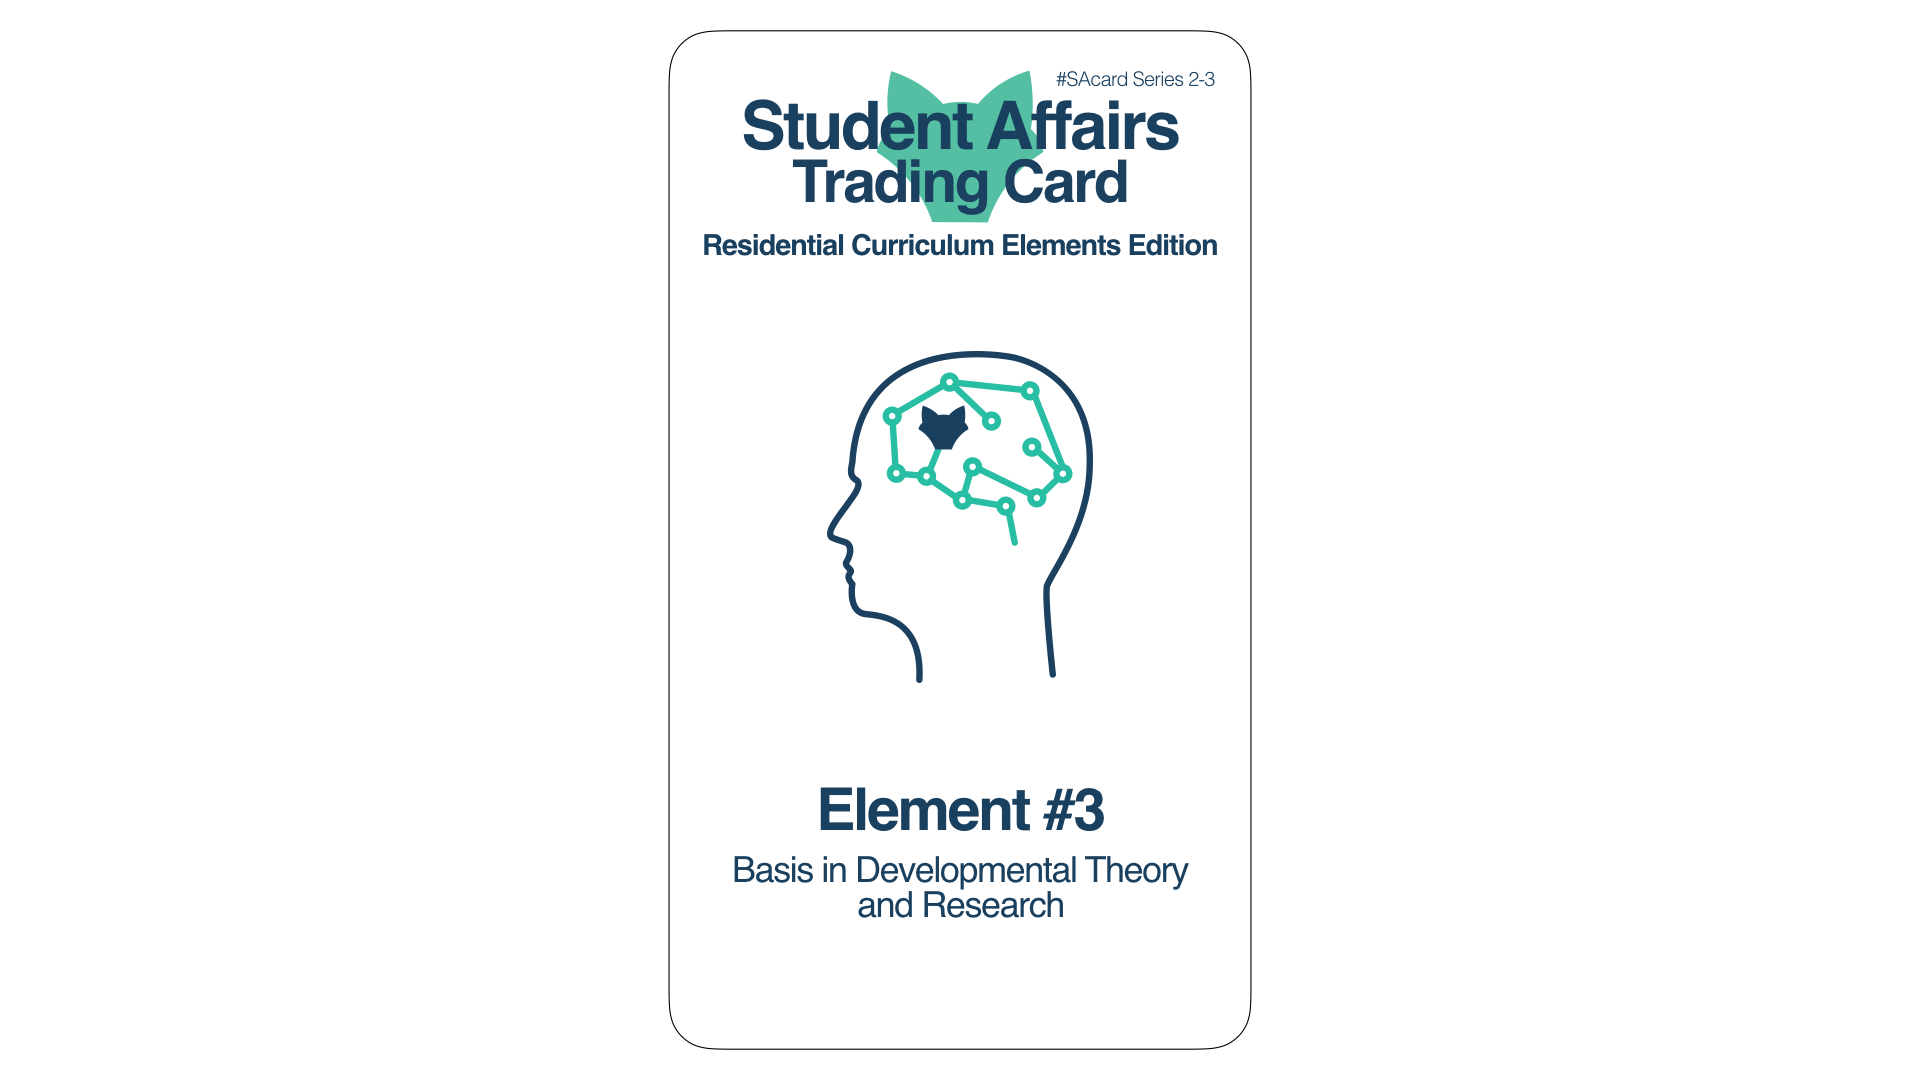 Student Affairs Trading Card 2-3: Residential Curriculum Element 3